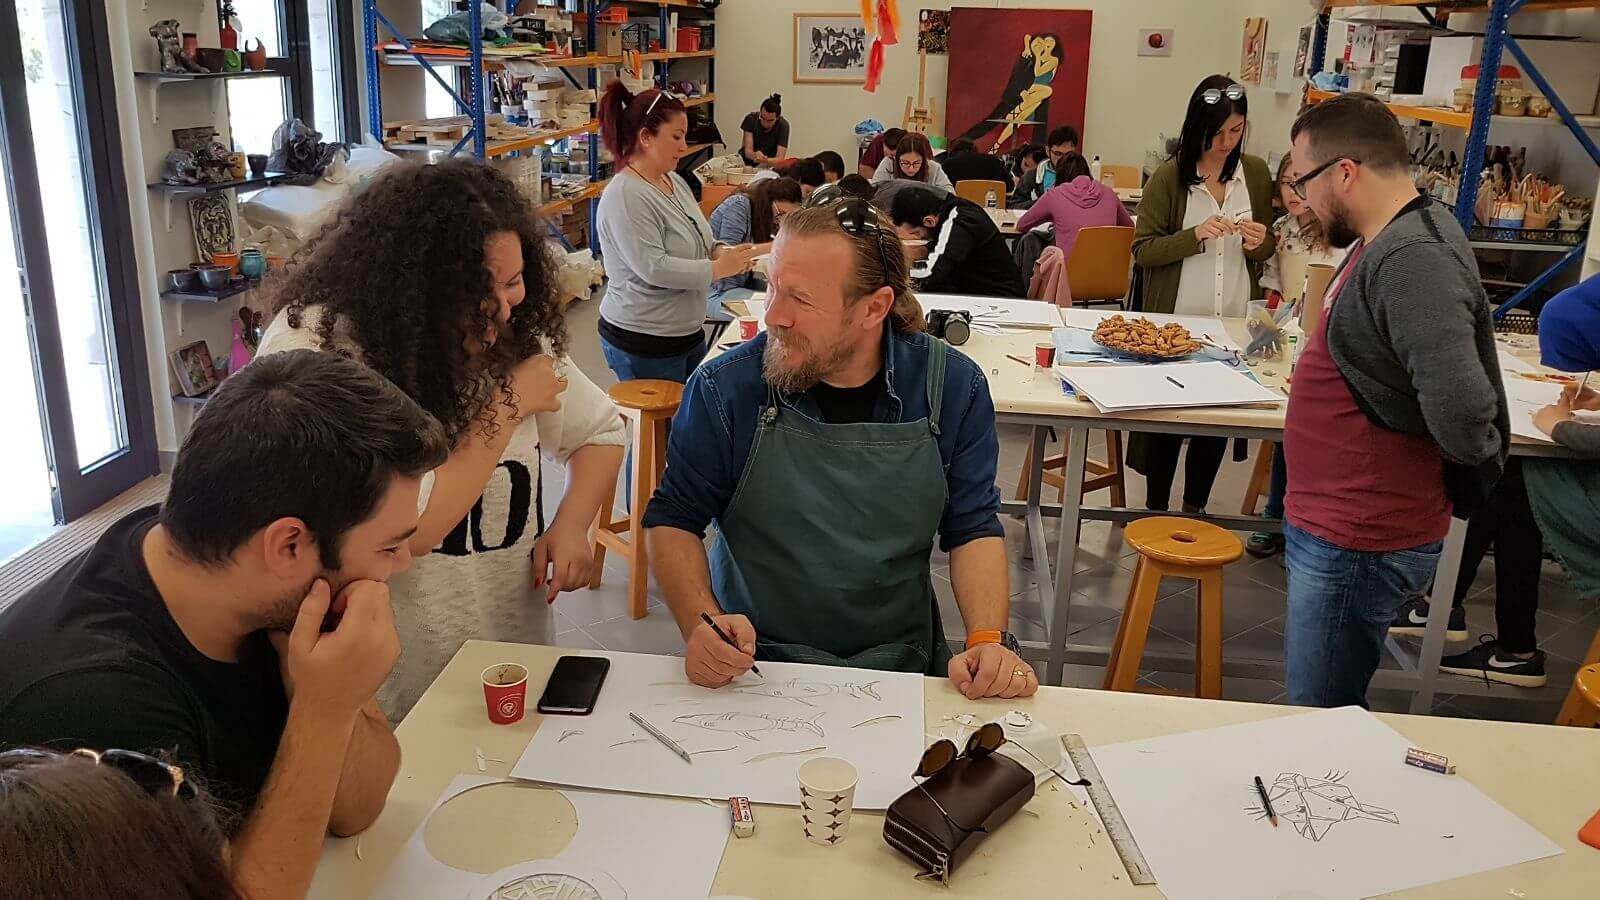 Academic Member of the Near East University Faculty of Fine Arts and Design, Assoc. Prof. Dr.Erdoğan Ergün, realised an Artistic Workshop at the METU MarchFest Culture and Art Festival